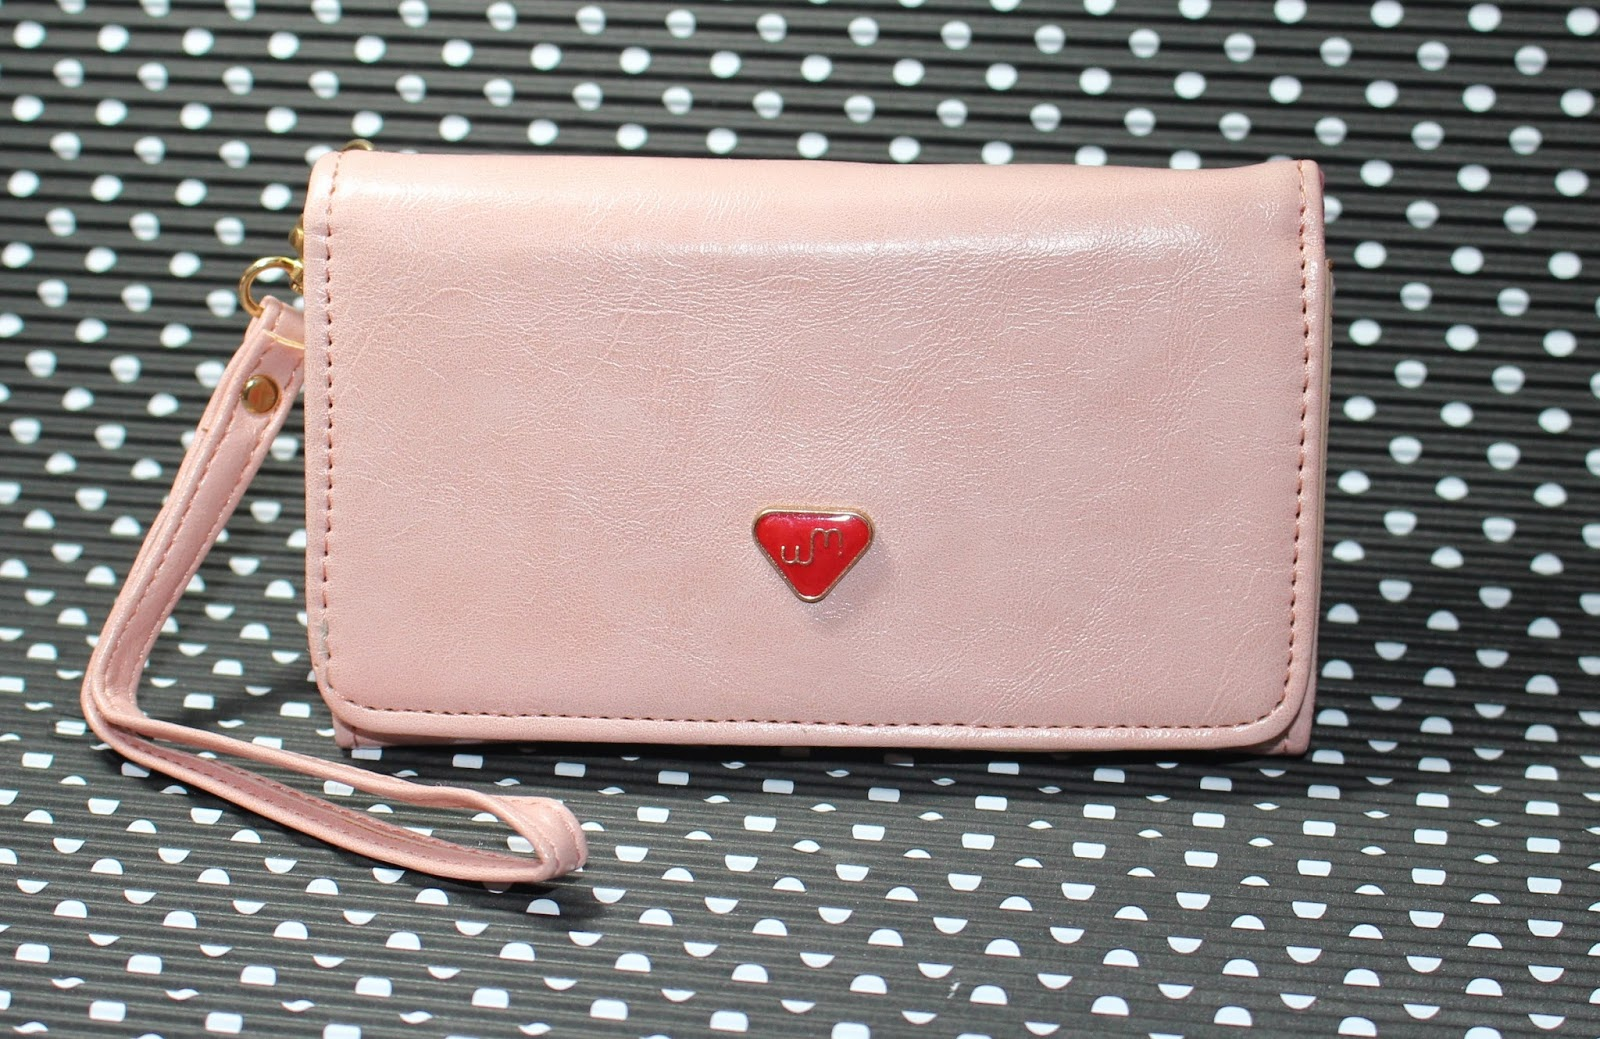 http://www.dresslink.com/envelope-card-wallet-leather-purse-case-cover-for-samsung-galaxy-s2-s3-iphone-4s-5-p-9128.html